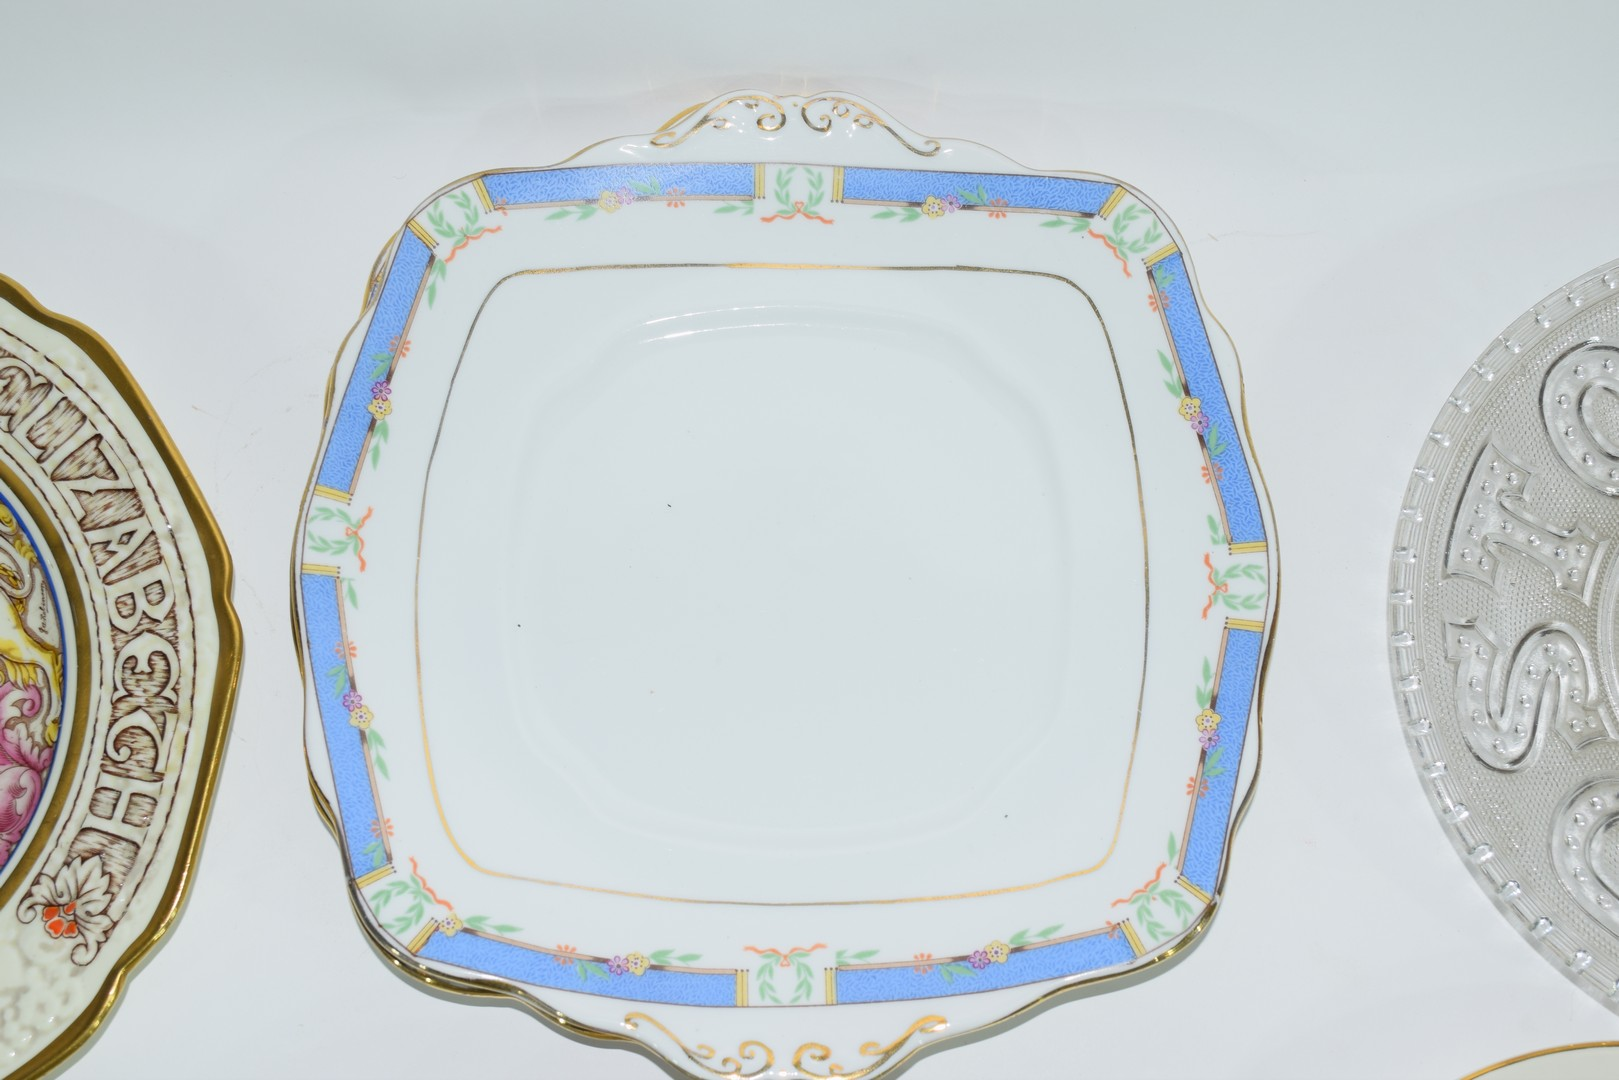 Group of decorative plates including a Paragon commemorative plate - Image 5 of 7